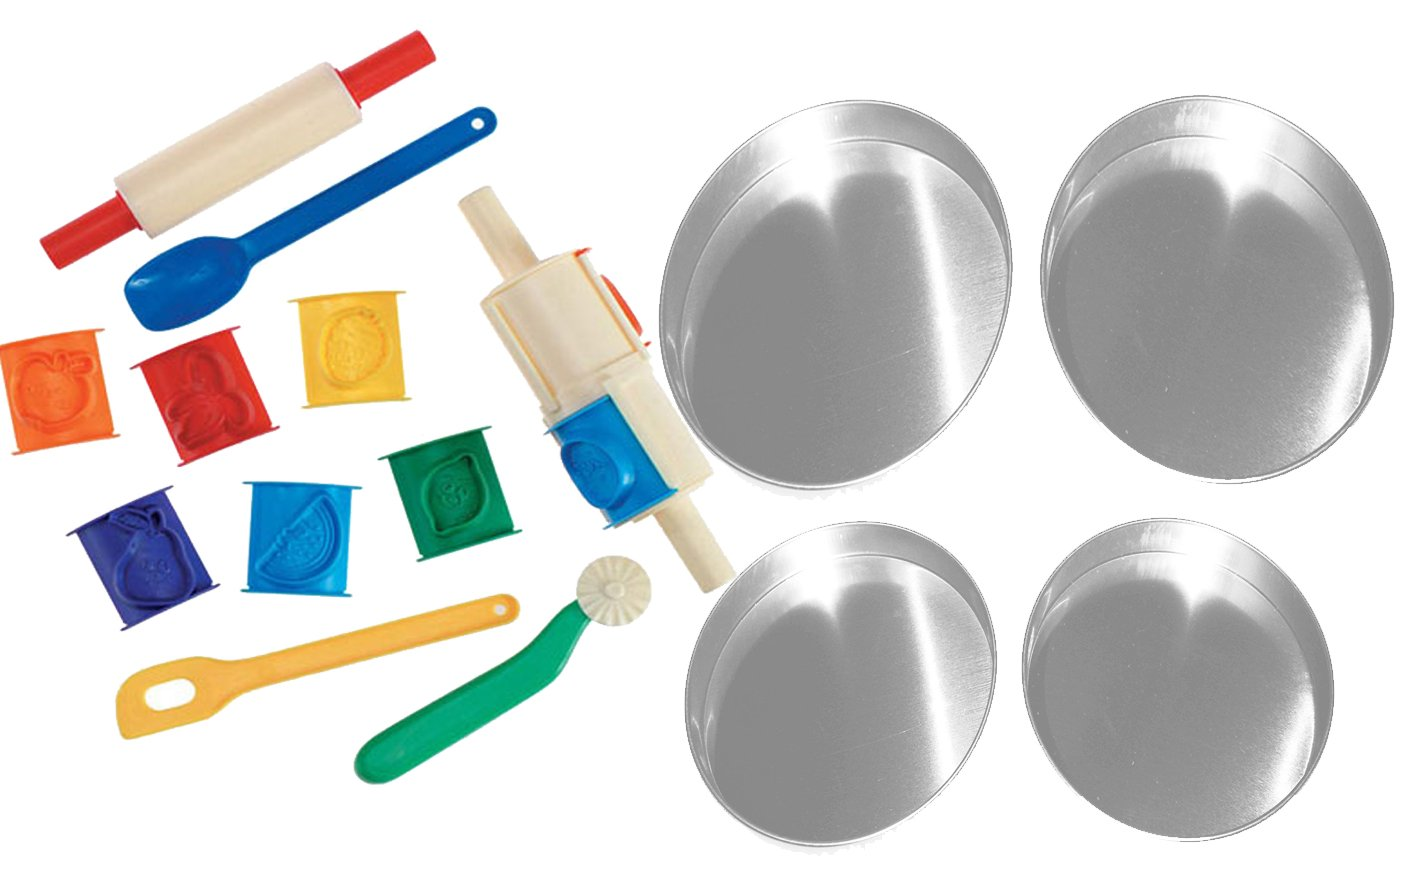 Easy Oven BAKe Cake Baking Kit Includes 4 Round Cake Pans & 11 Tools